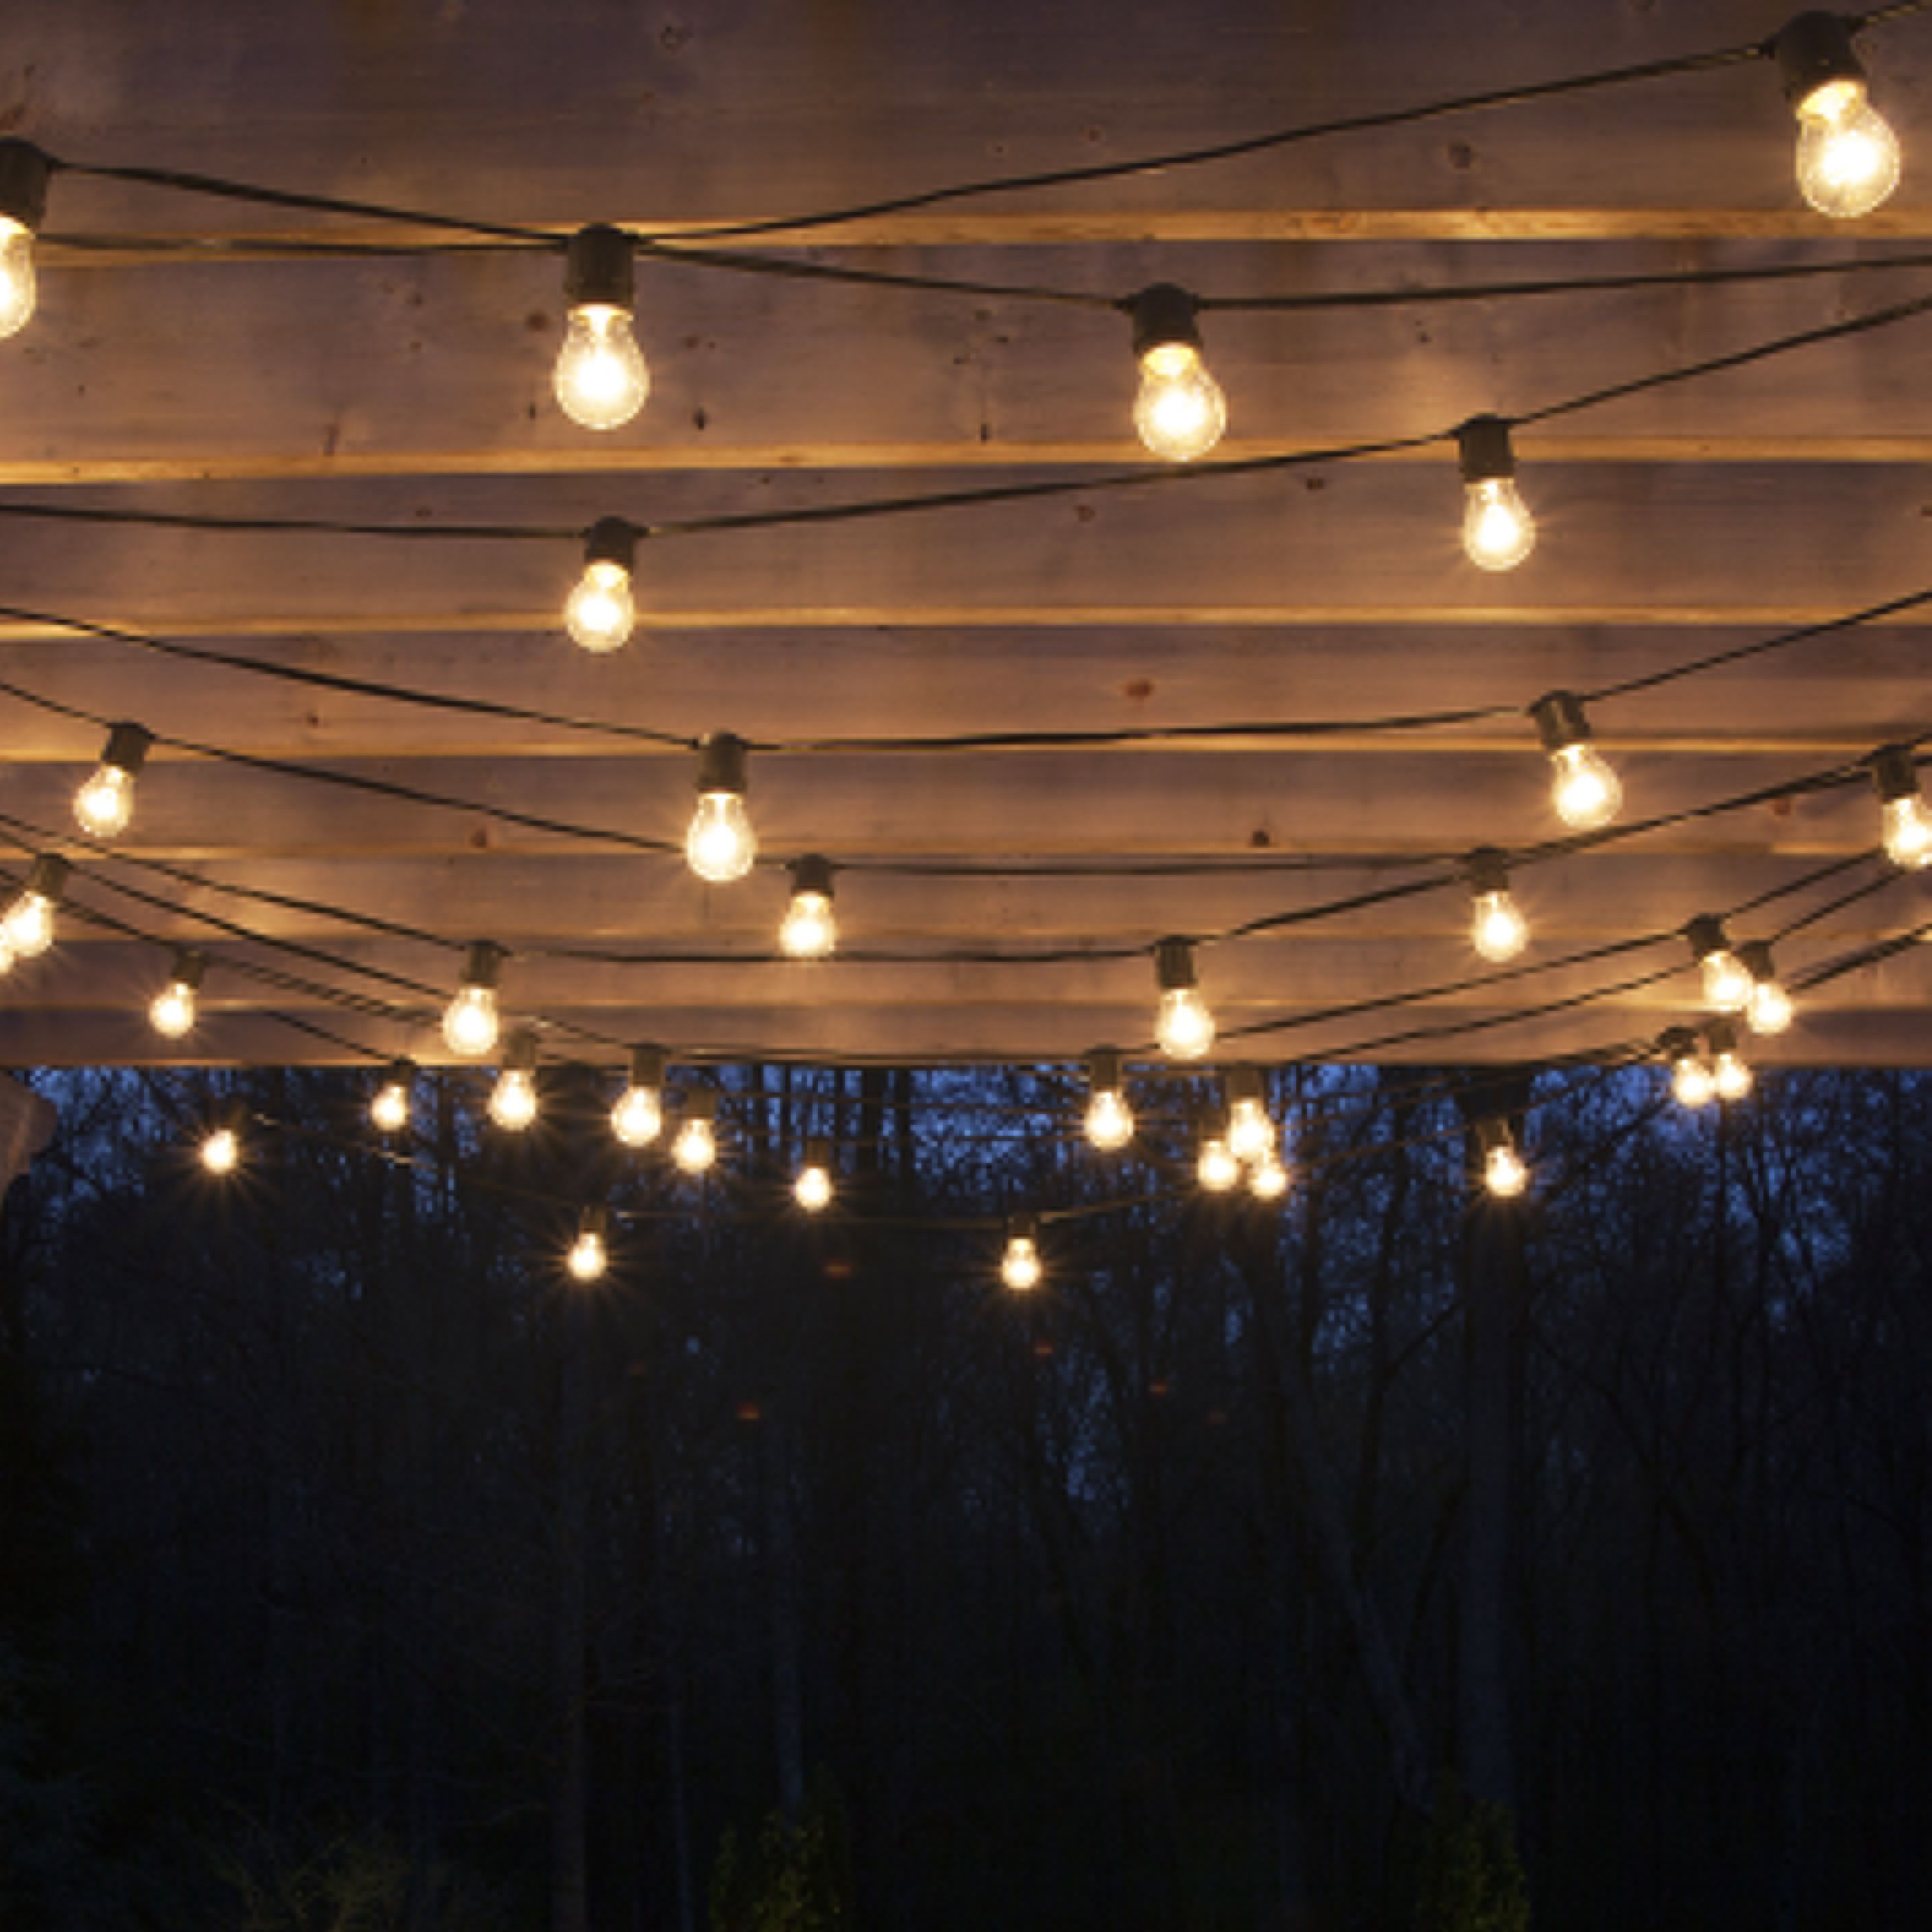 Patio Lighting, Pergolas And Patios Throughout Most Recent Outdoor Hanging Garden Lights (View 14 of 20)